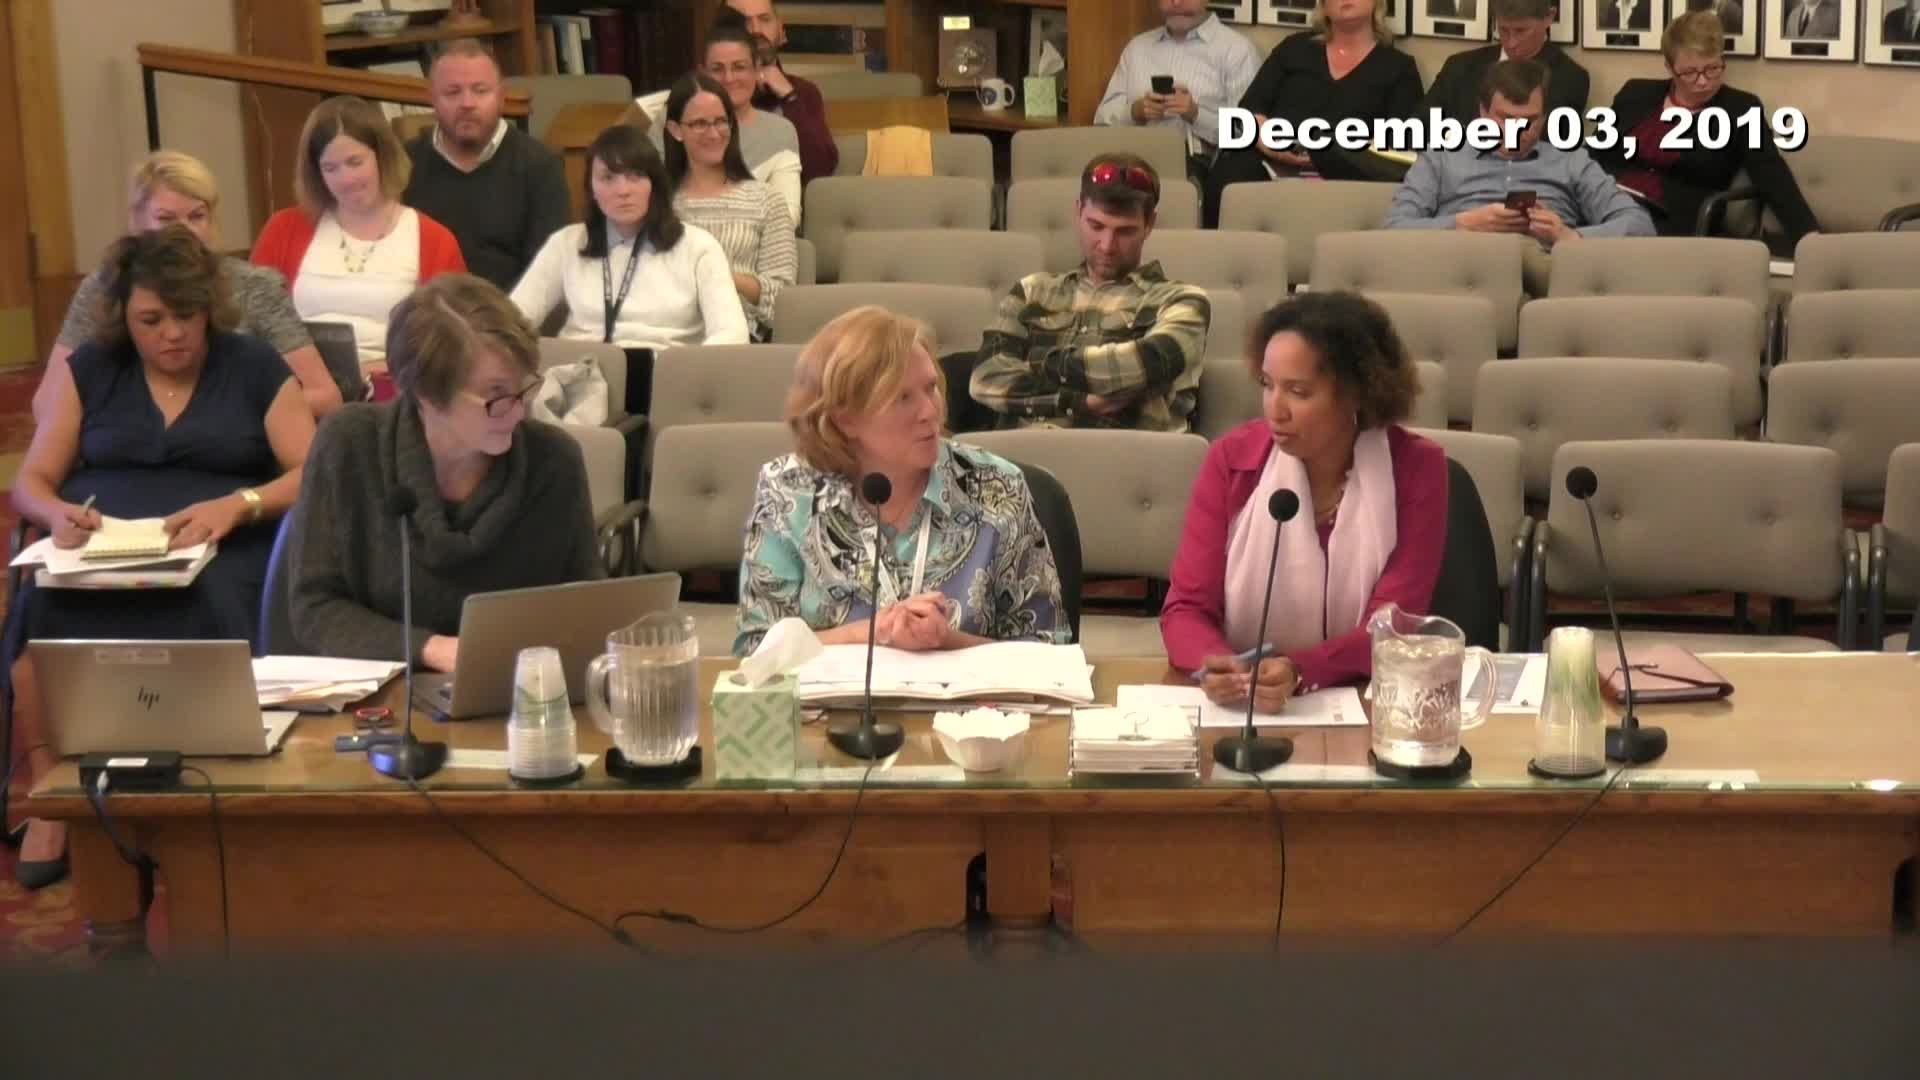 City Council Work Session - 12/03/2019